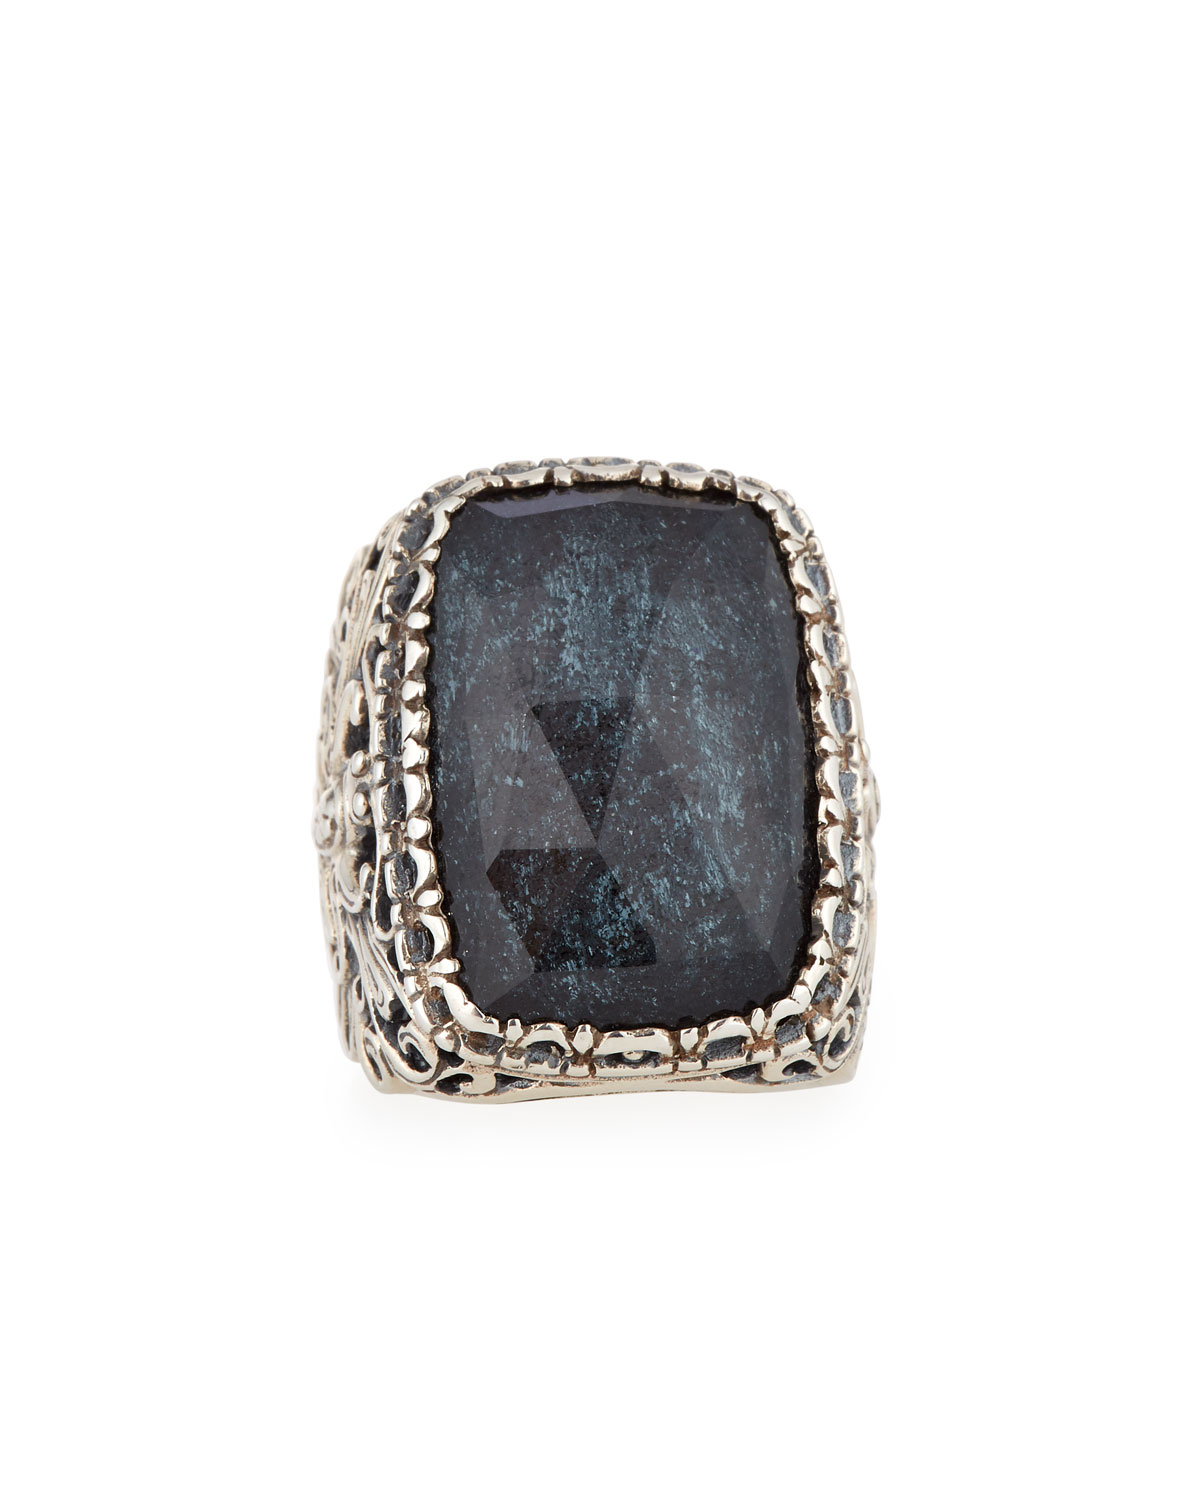 KONSTANTINO RECTANGLE SPECULAR HEMATITE DOUBLET RING, SIZE 7